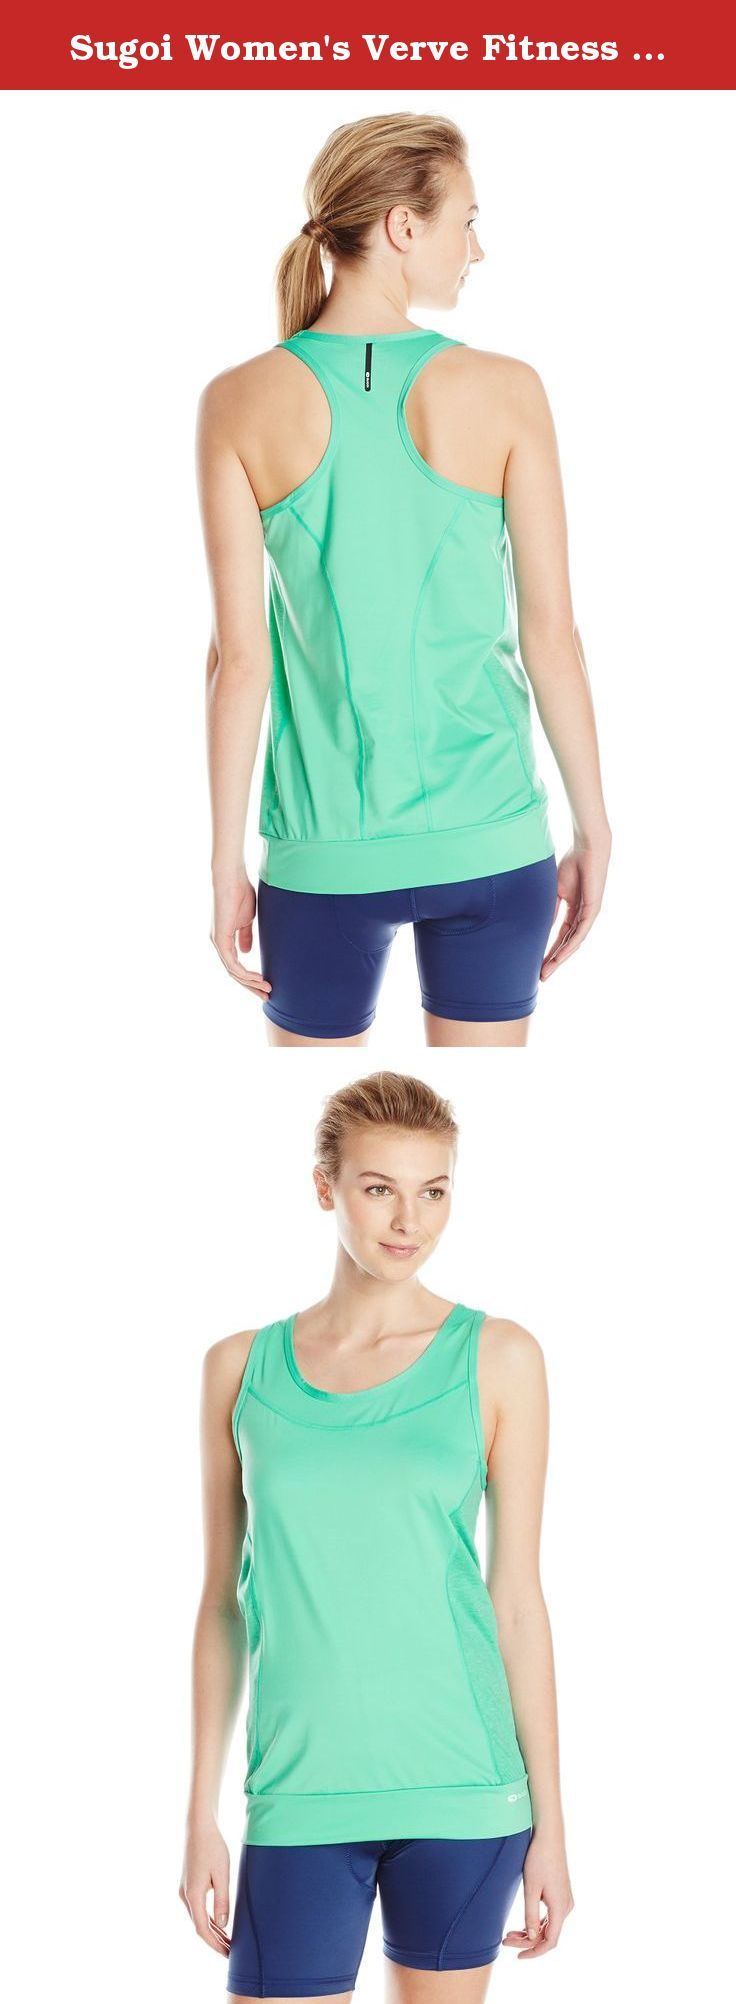 Sugoi Women's Verve Fitness Tank Top, Glacier, Small. This stylish top uses multiple material construction, matching its performance to its good looks. Helix Lite and Helix Lite melange fabric for a cool aerobic environment Open-scoop neckline and longer silhouette for relaxed fit Figure flattering design lines.